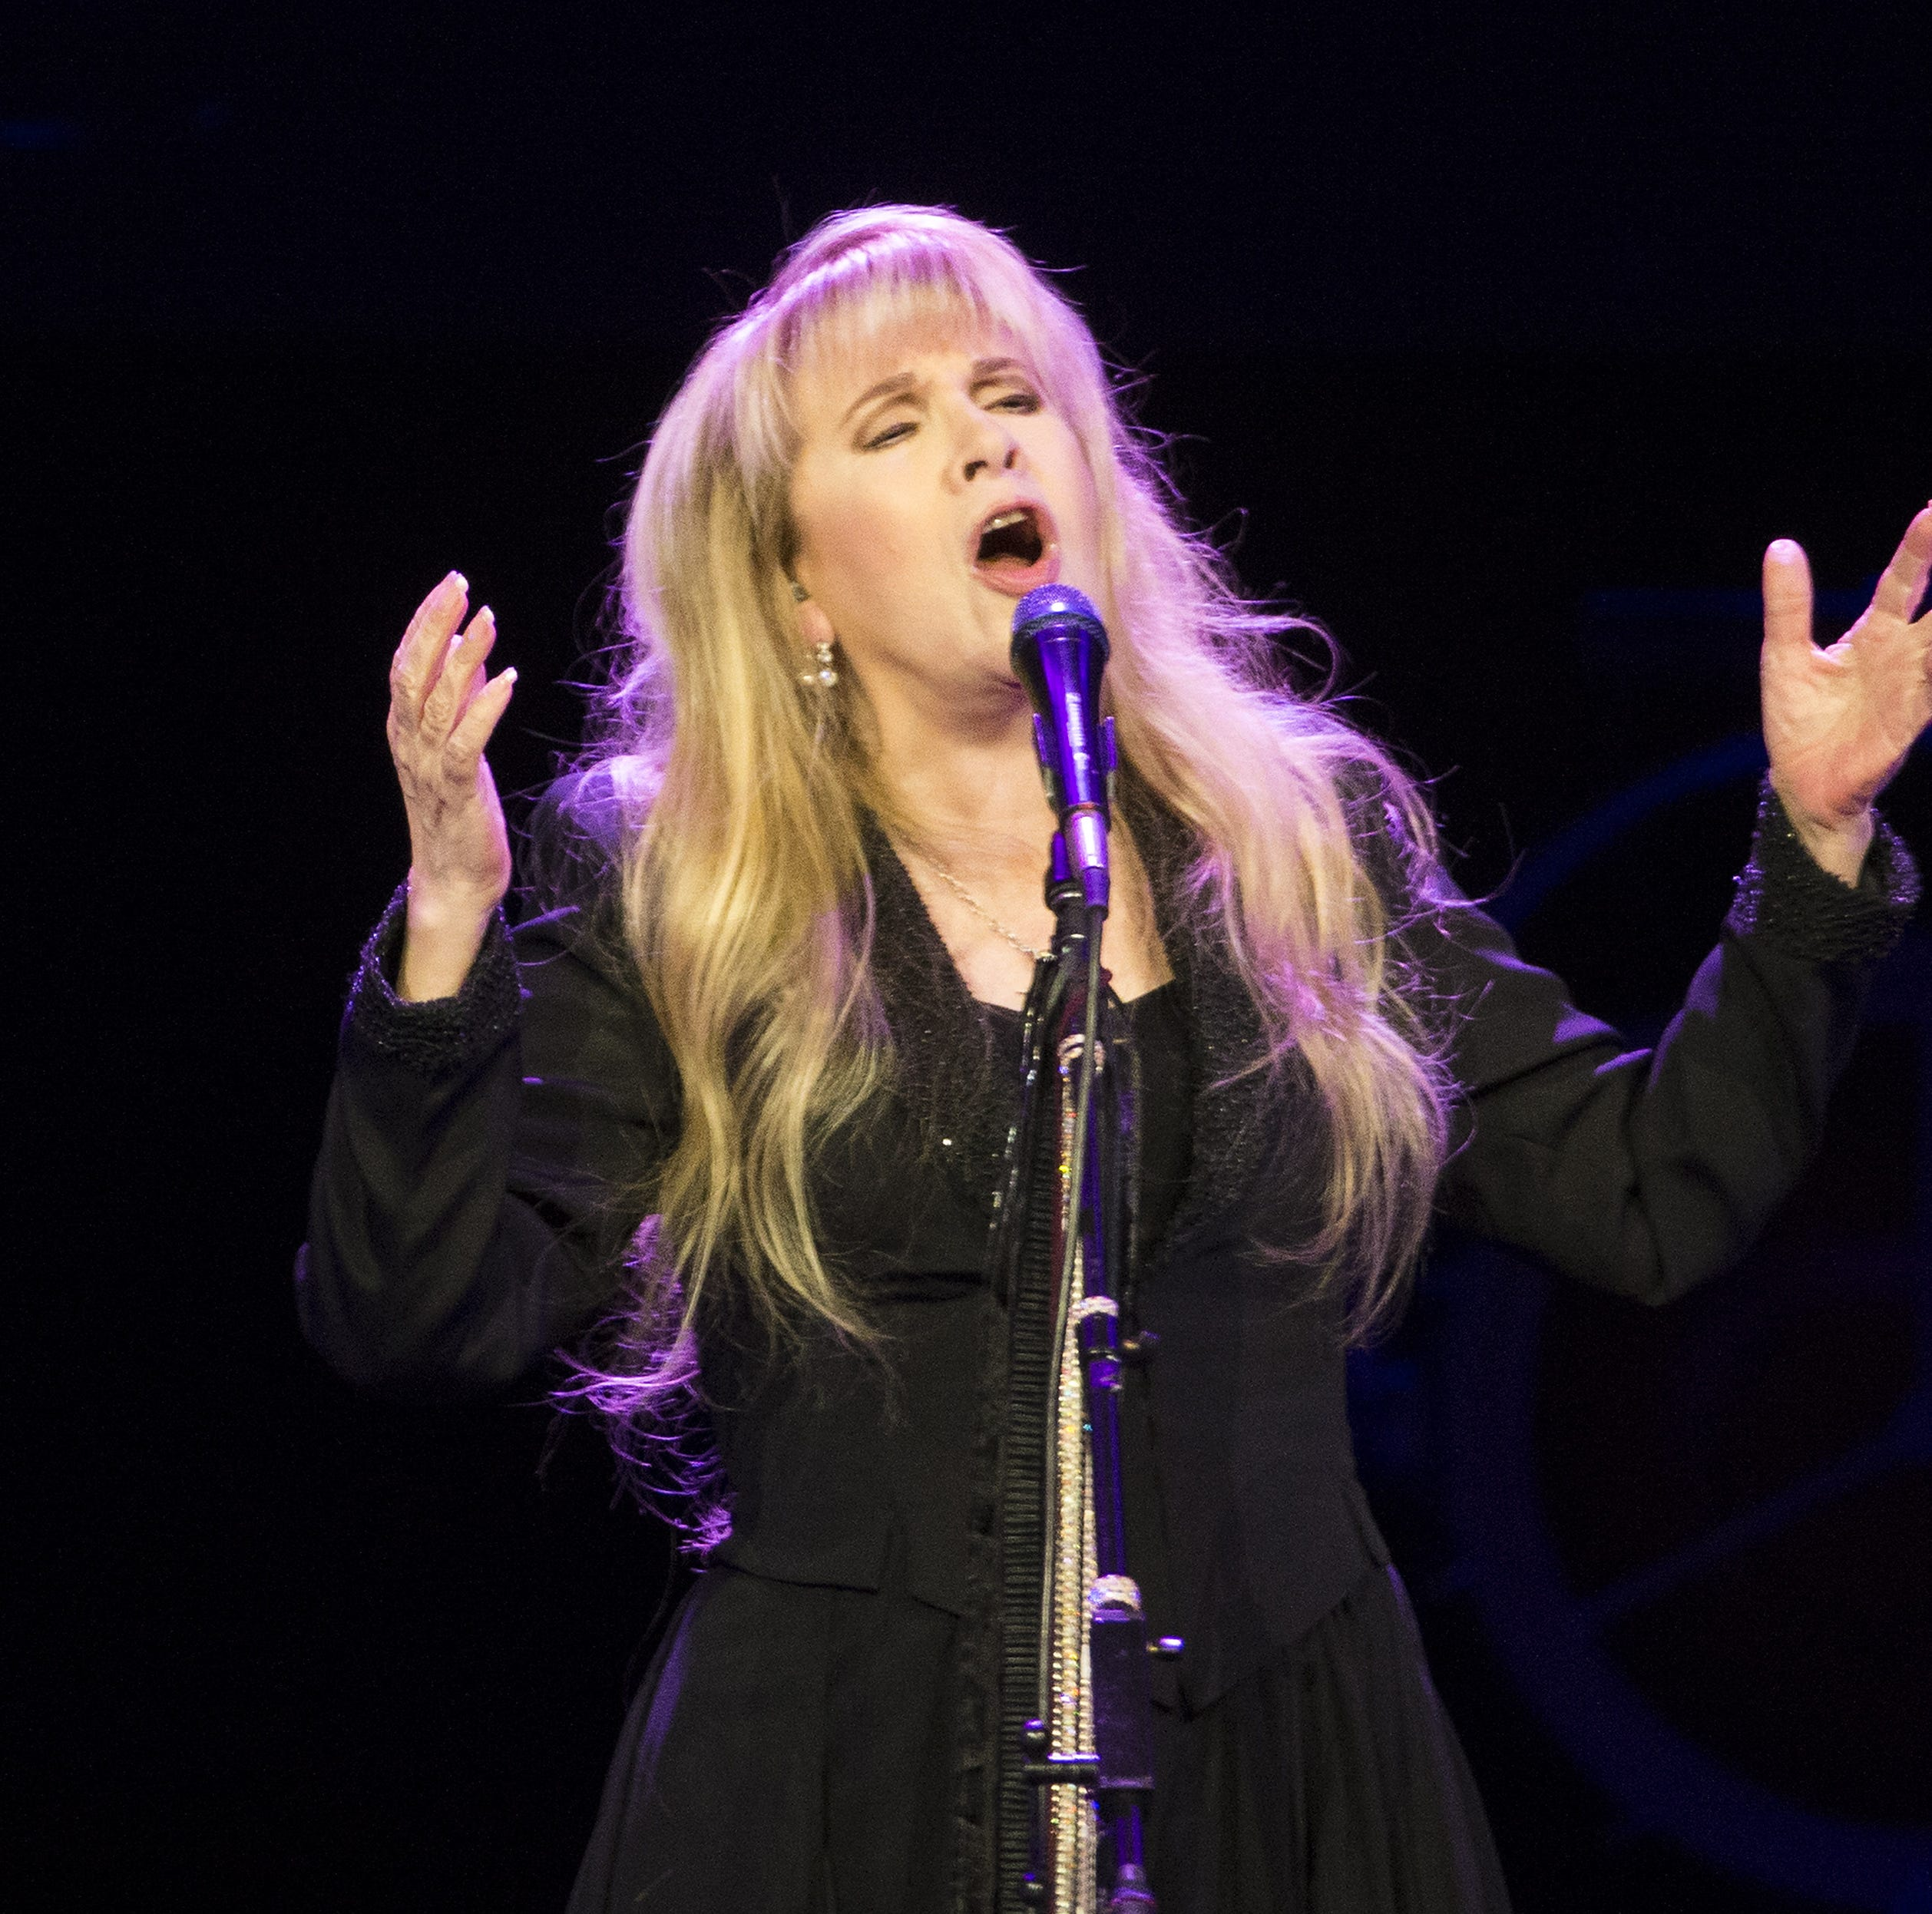 Could Stevie Nicks win the Rock and Roll Hall of Fame fan vote?